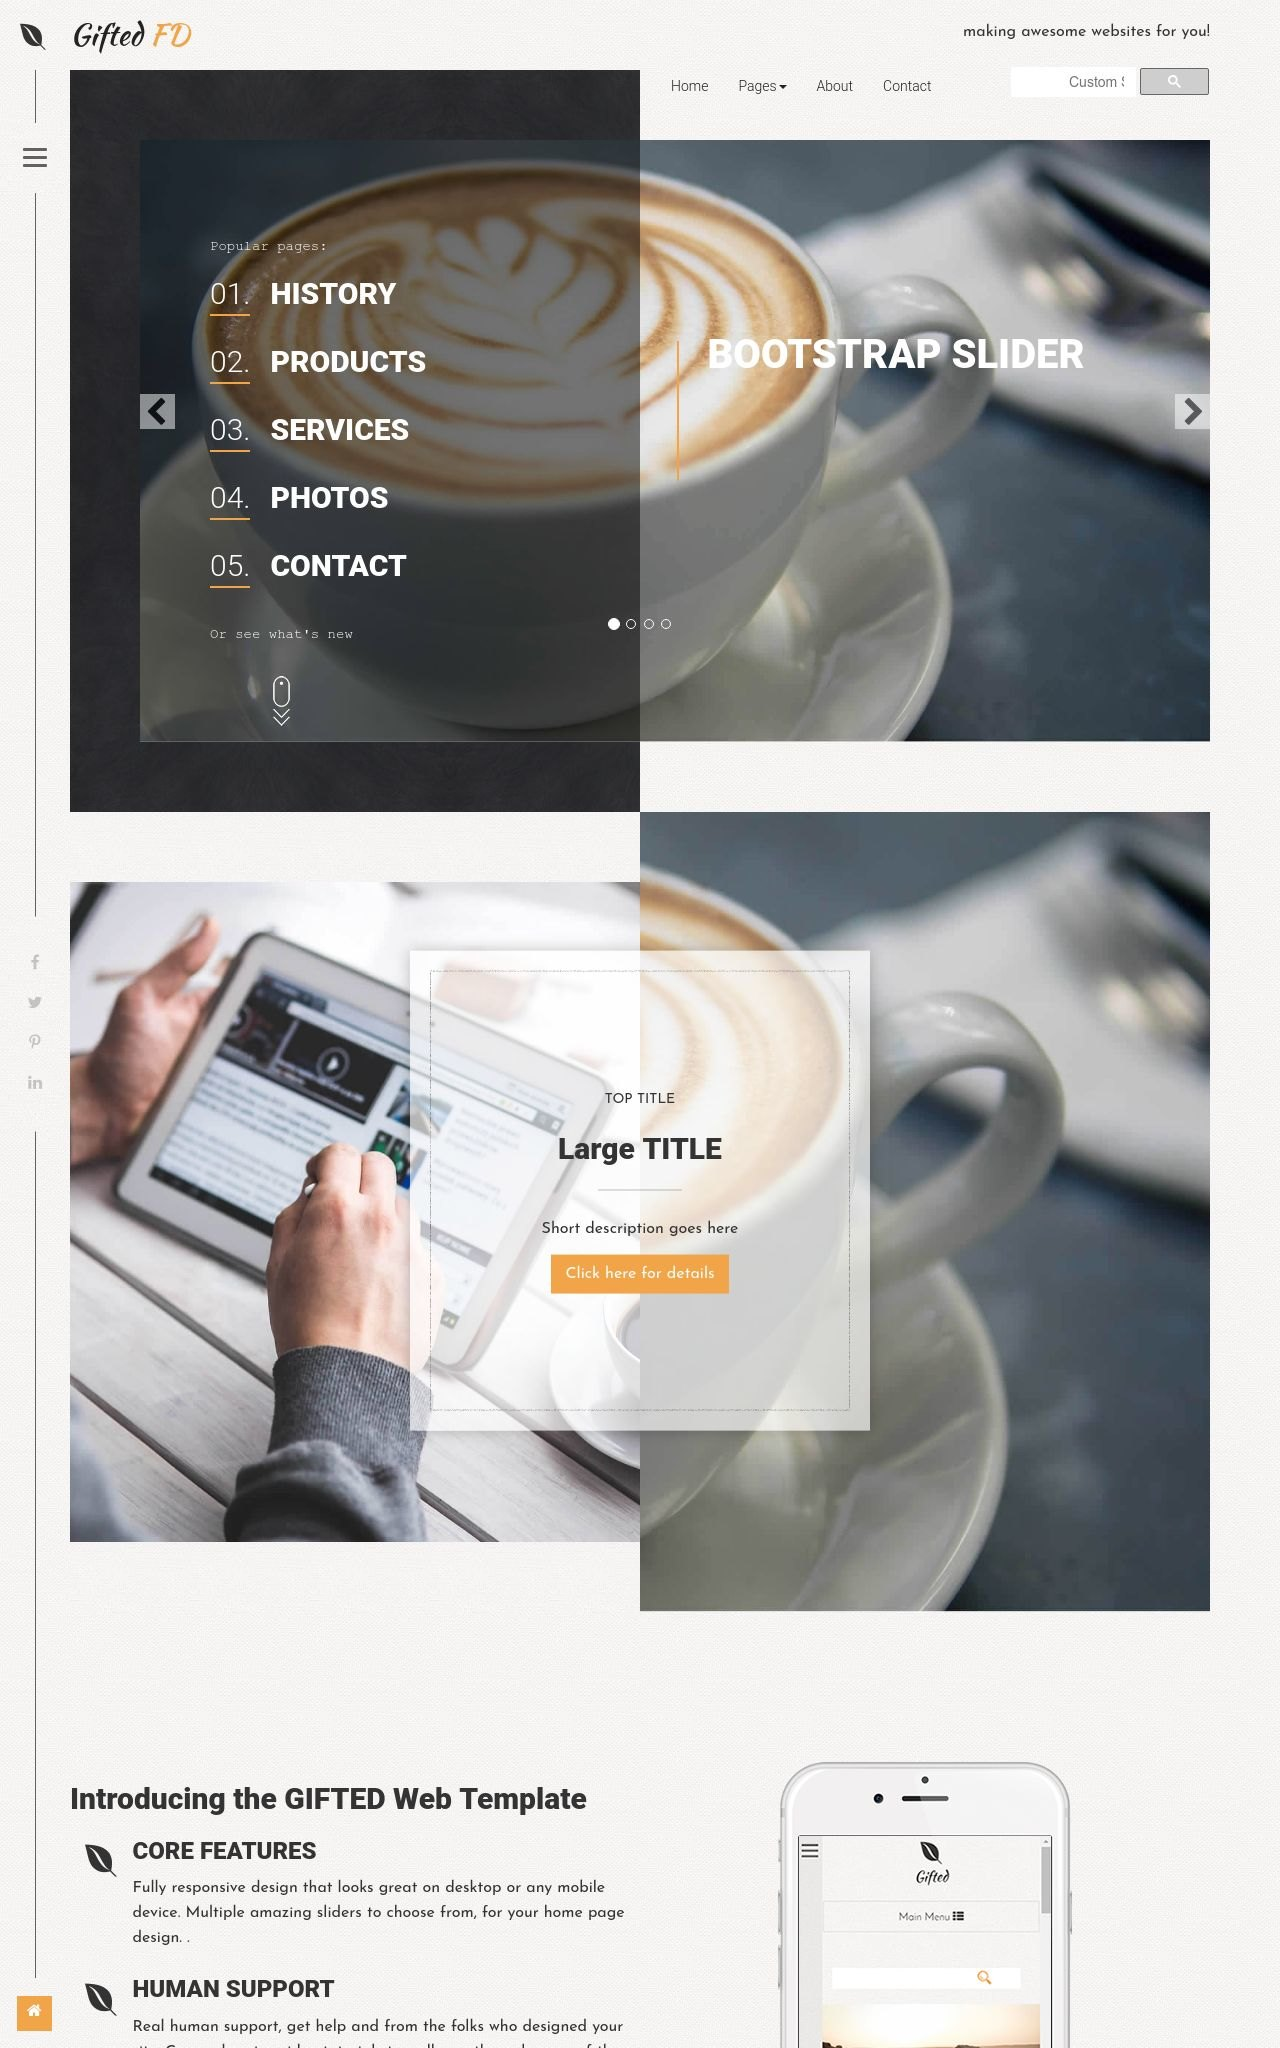 Desktop: Cafe Web Template